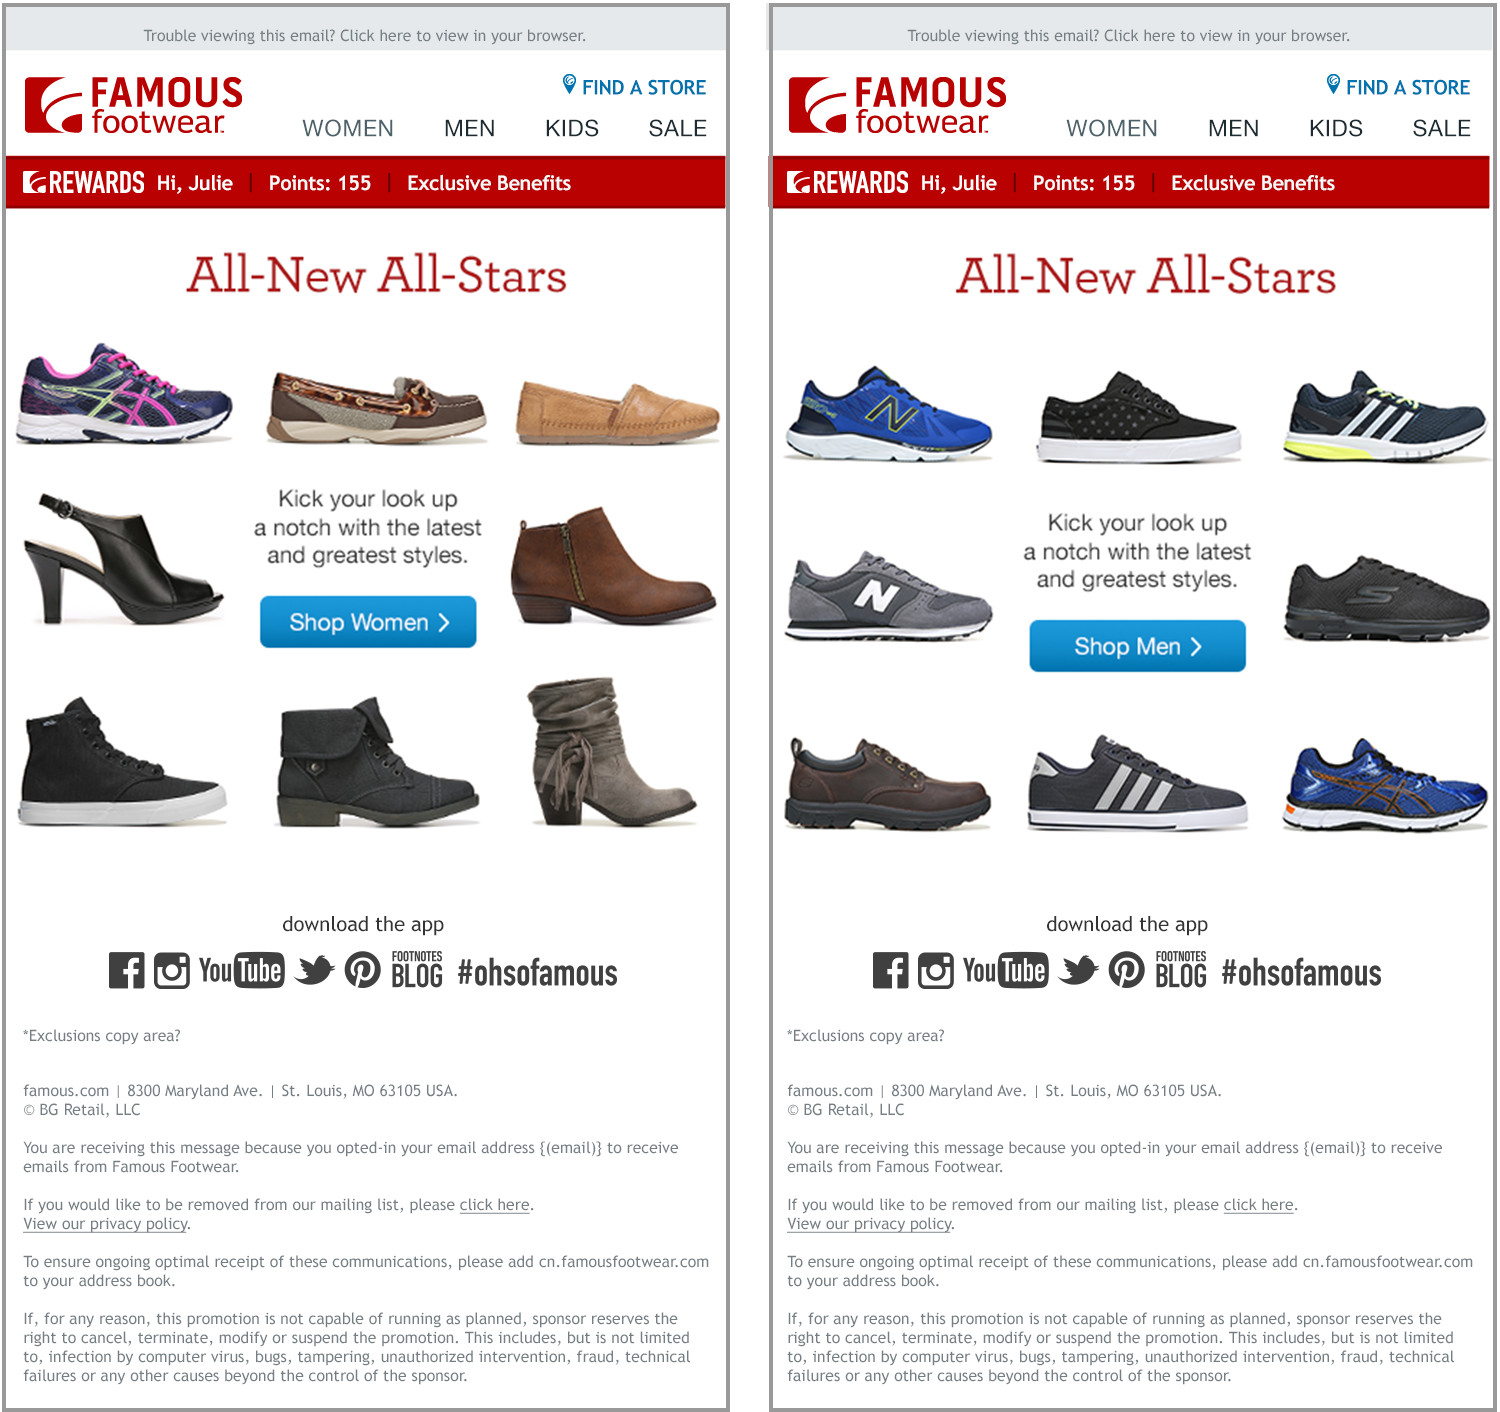 I designed this minimalist email to highlight the variety of new shoes for the season. It performed XX% better than the average Famous Footwear email generating $XX in revenue.